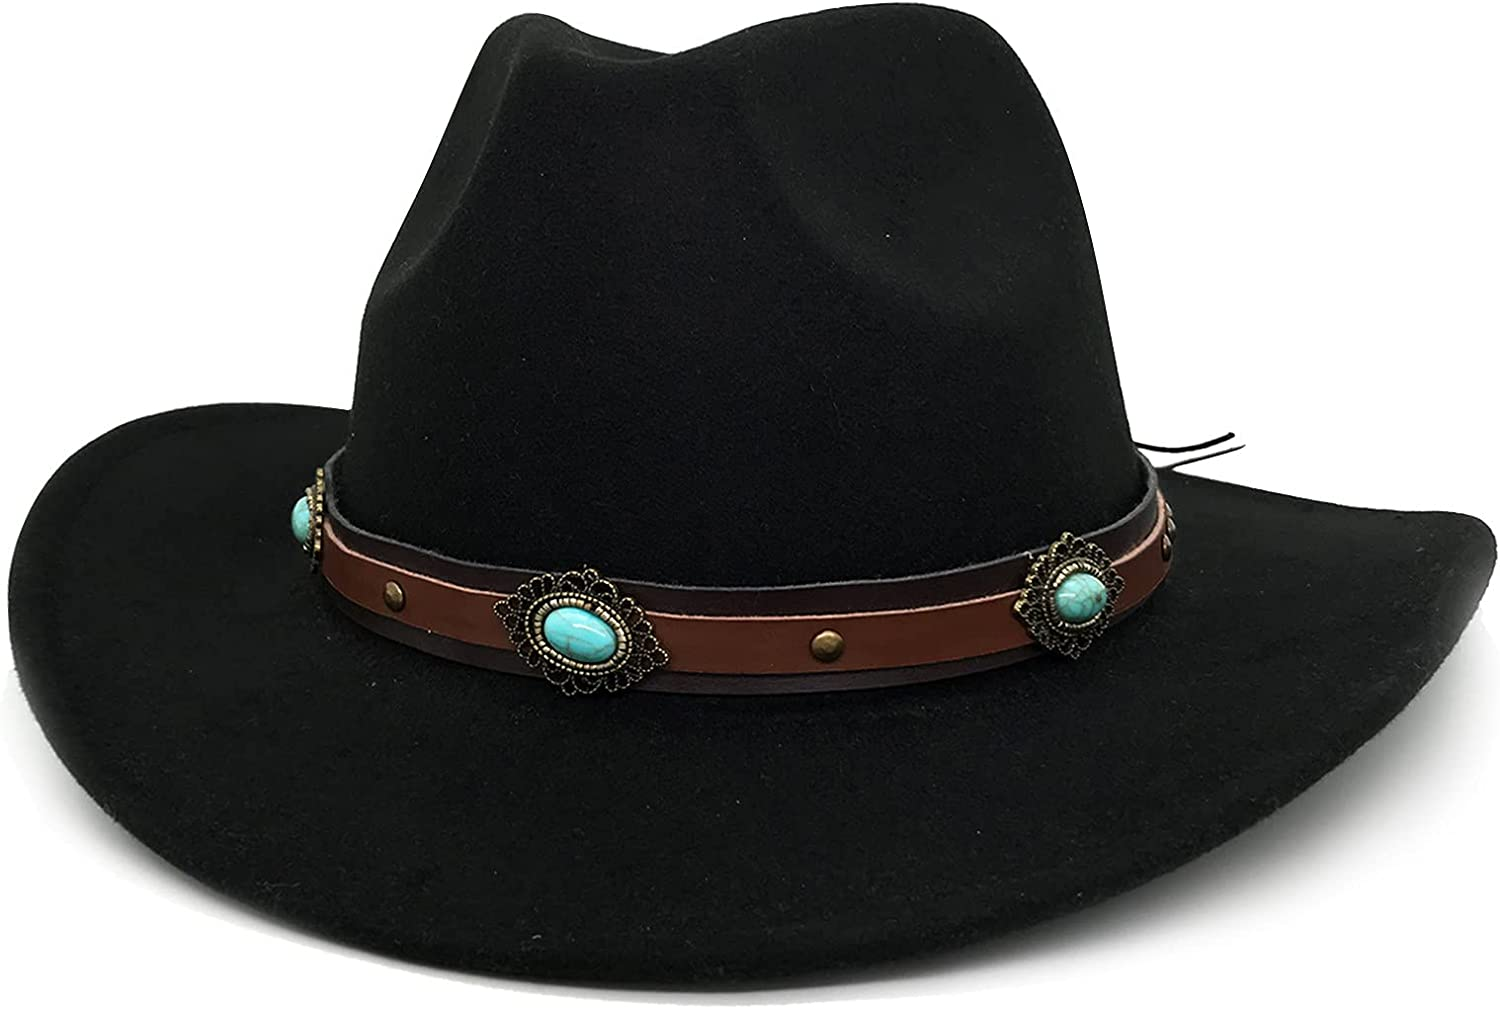 Lisianthus Seattle Mall 67% OFF of fixed price Women's Western Cowboy Cowgirl Style Hat Brim Wide